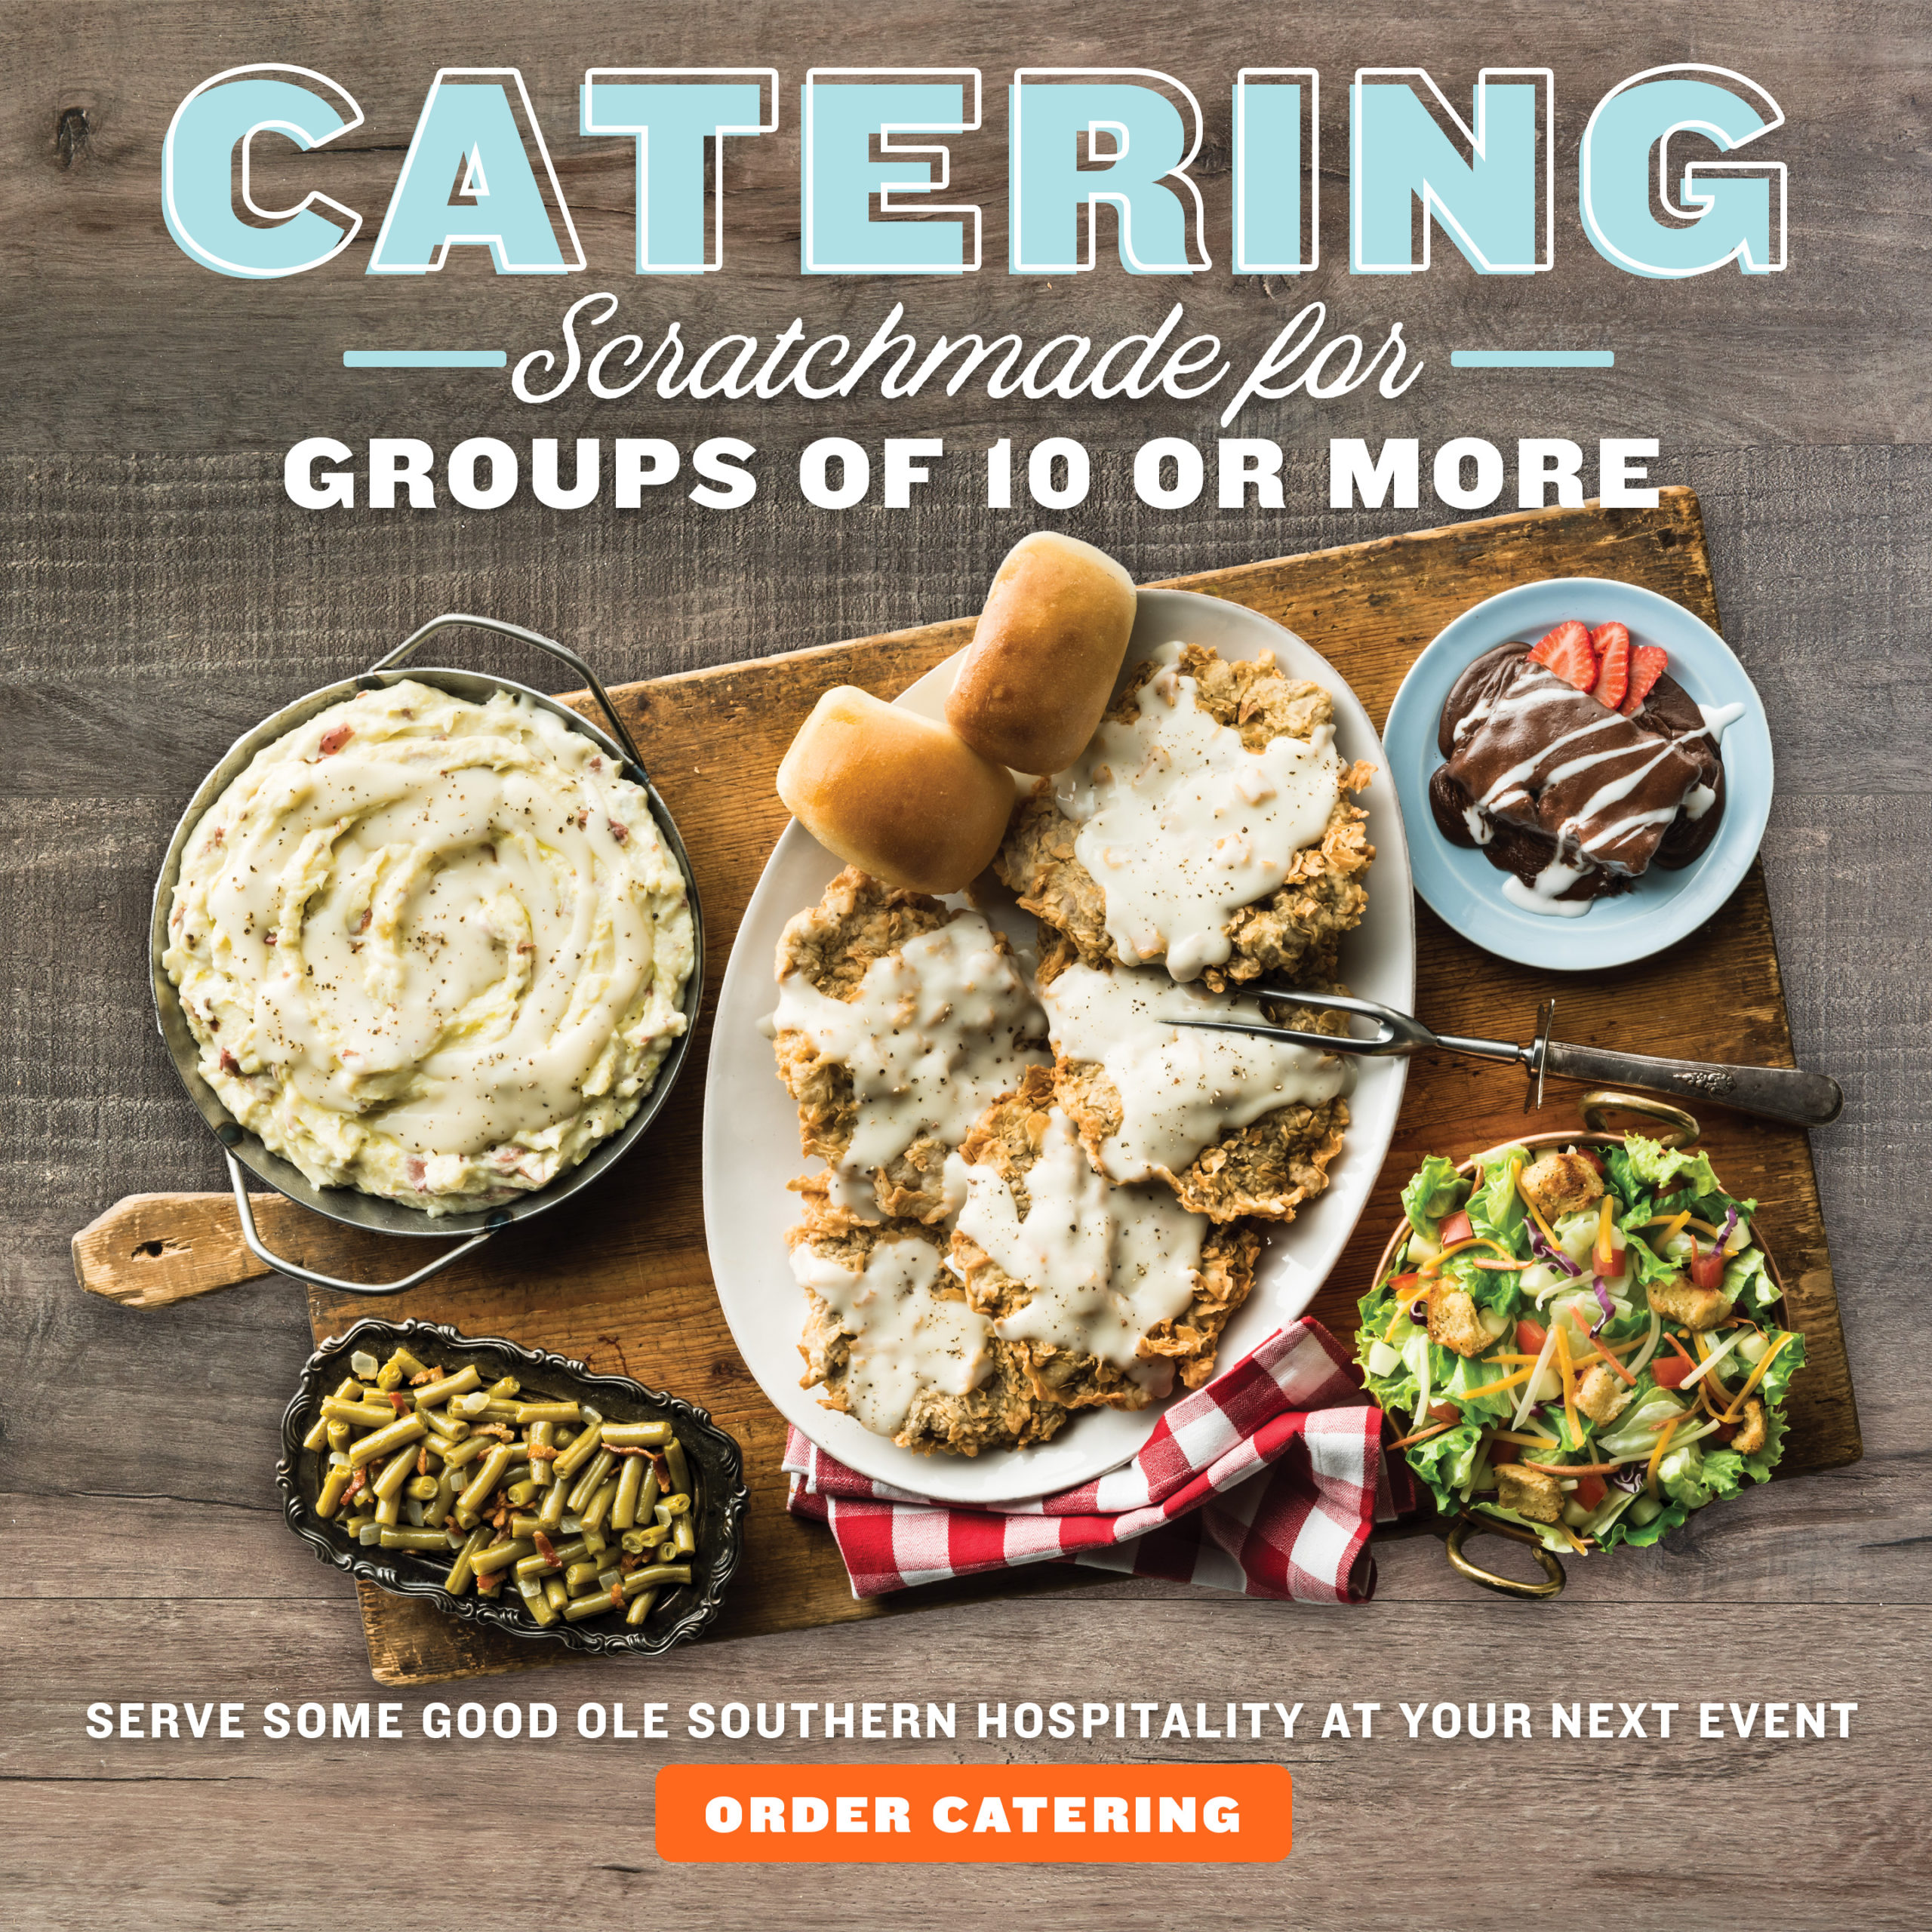 Catering: Scratchmade for groups of 10 or more. Serve some good ole Southern Hospitality at your next event